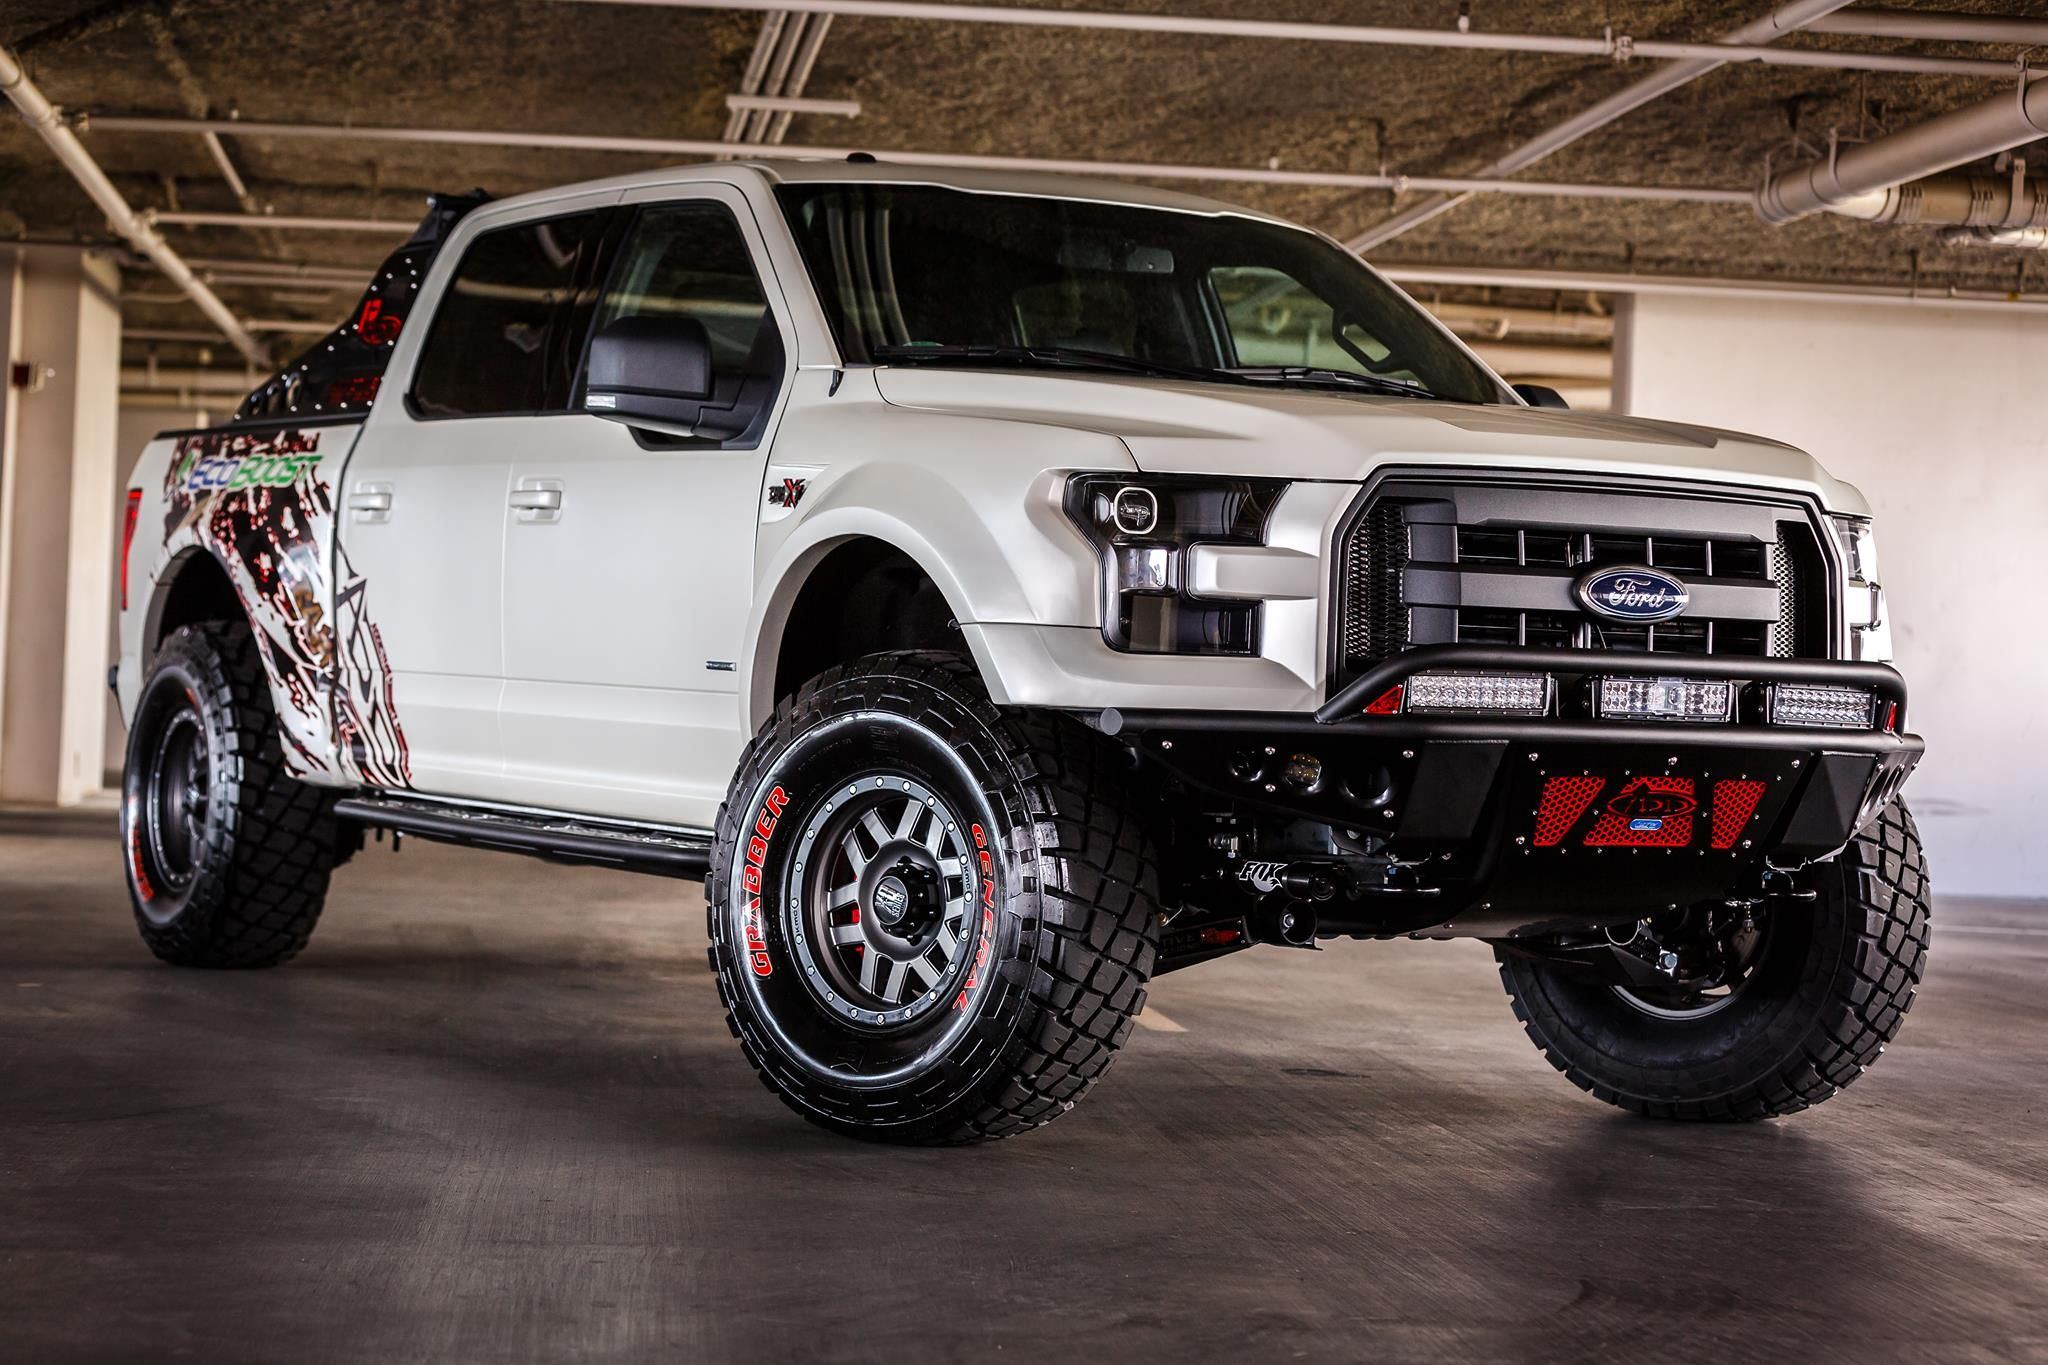 shop 2015 ford f 150 bumpers at add offroad 2015 ford f 150 pinterest. Black Bedroom Furniture Sets. Home Design Ideas